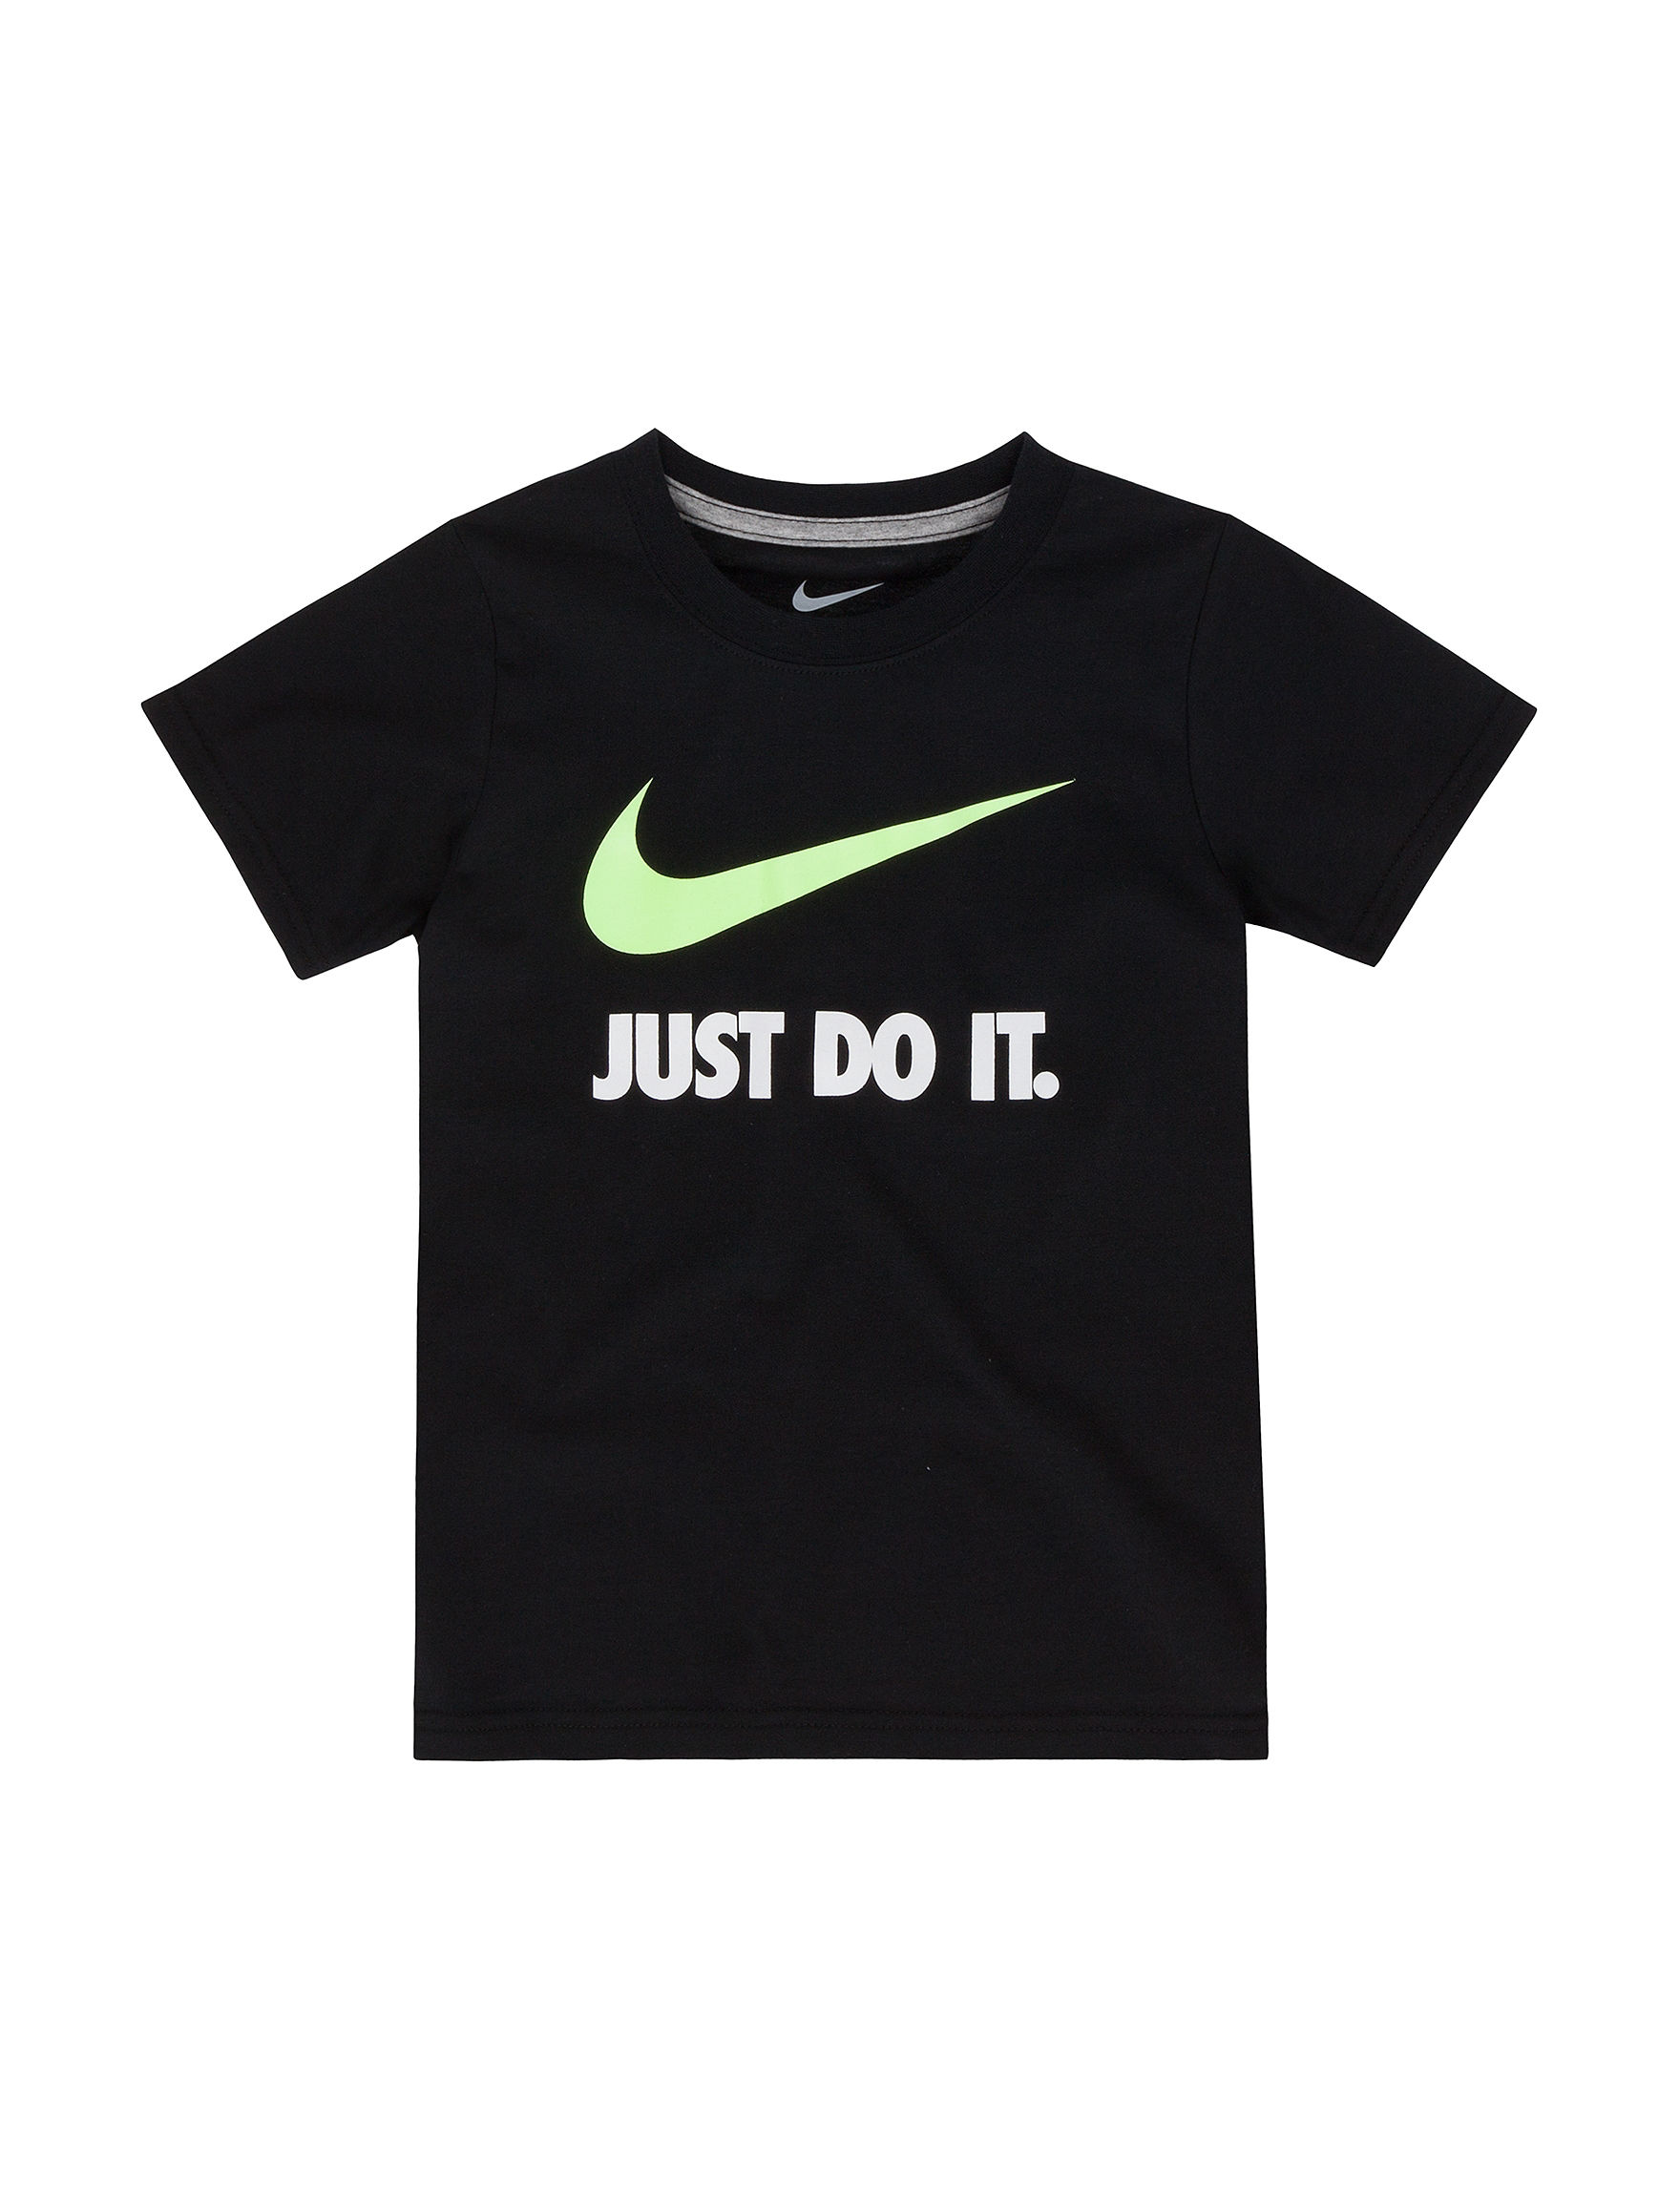 Nike black just do it t shirt boys 4 7 stage stores for Nike just do it t shirt women s